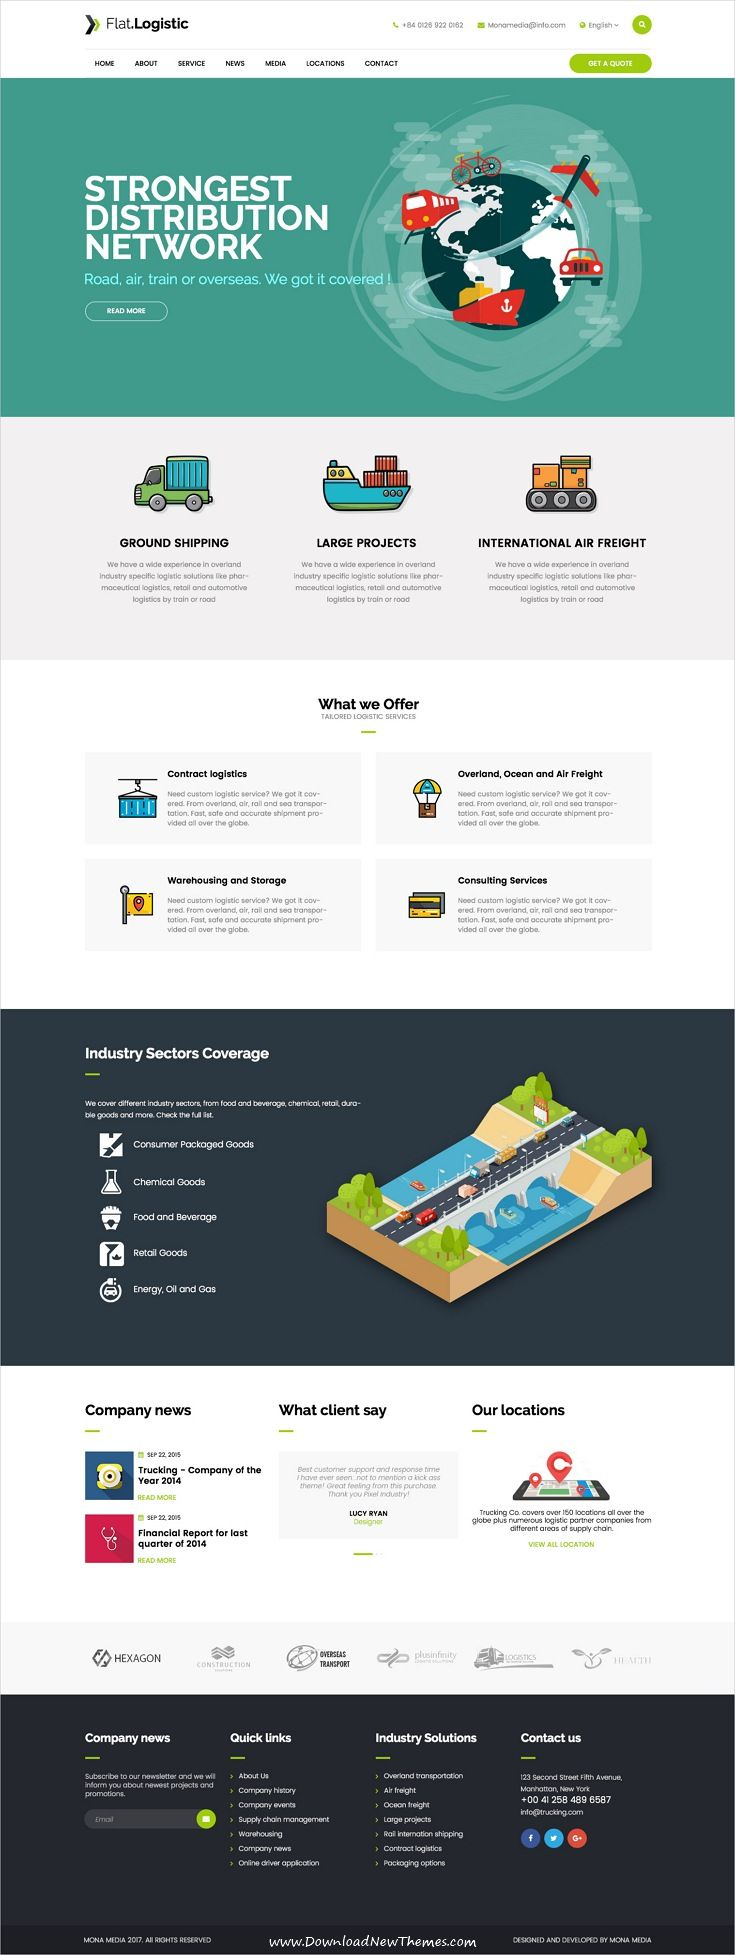 Flat Logistic is clean and modern design multipurpose PSD template